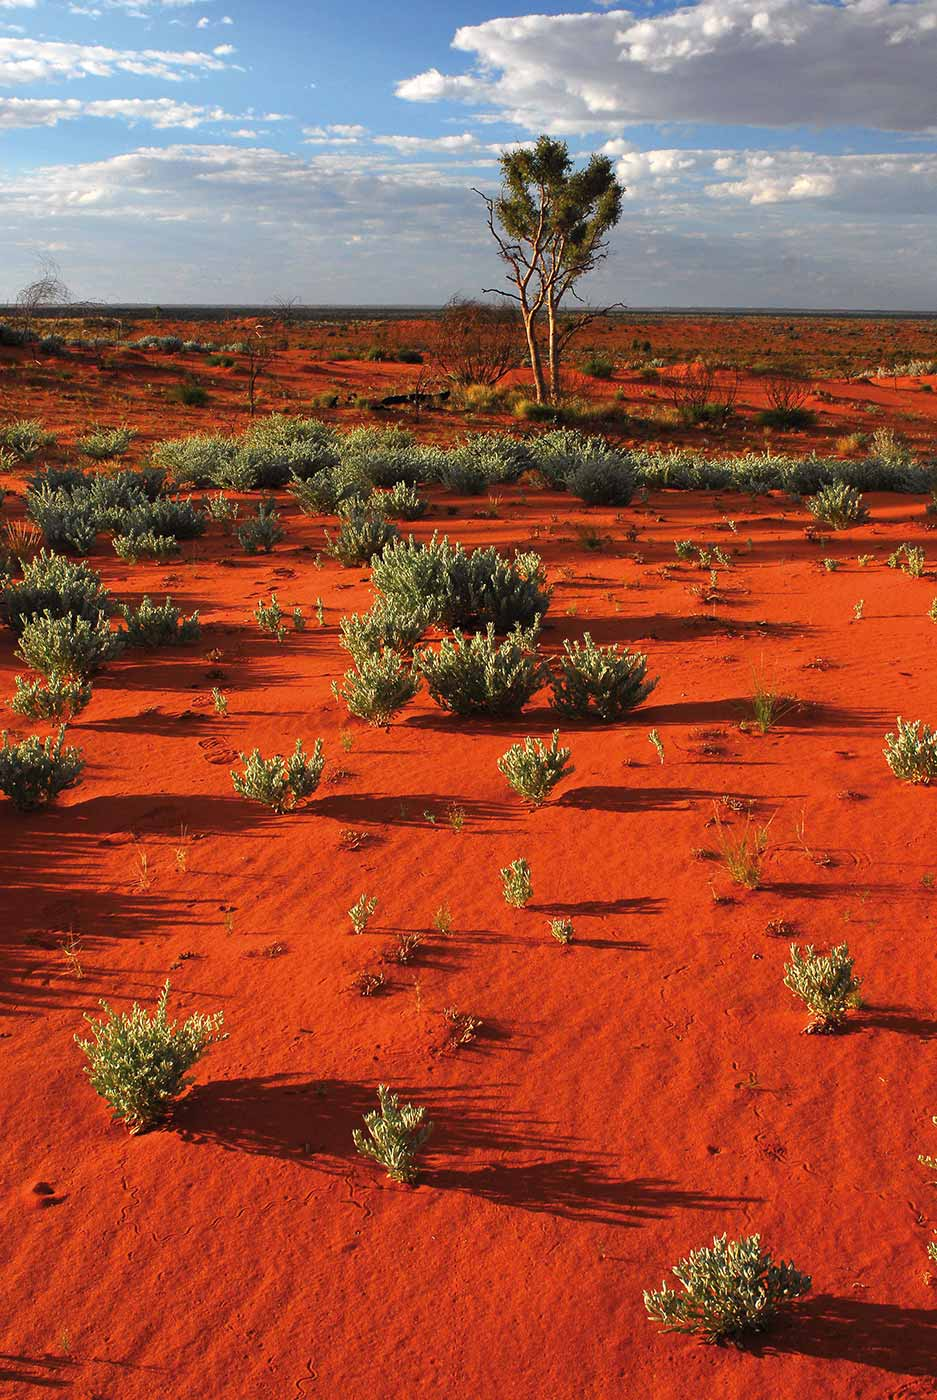 Colour photo of an arid landscape featuring red sand and low lying shrubs. - click to view larger image